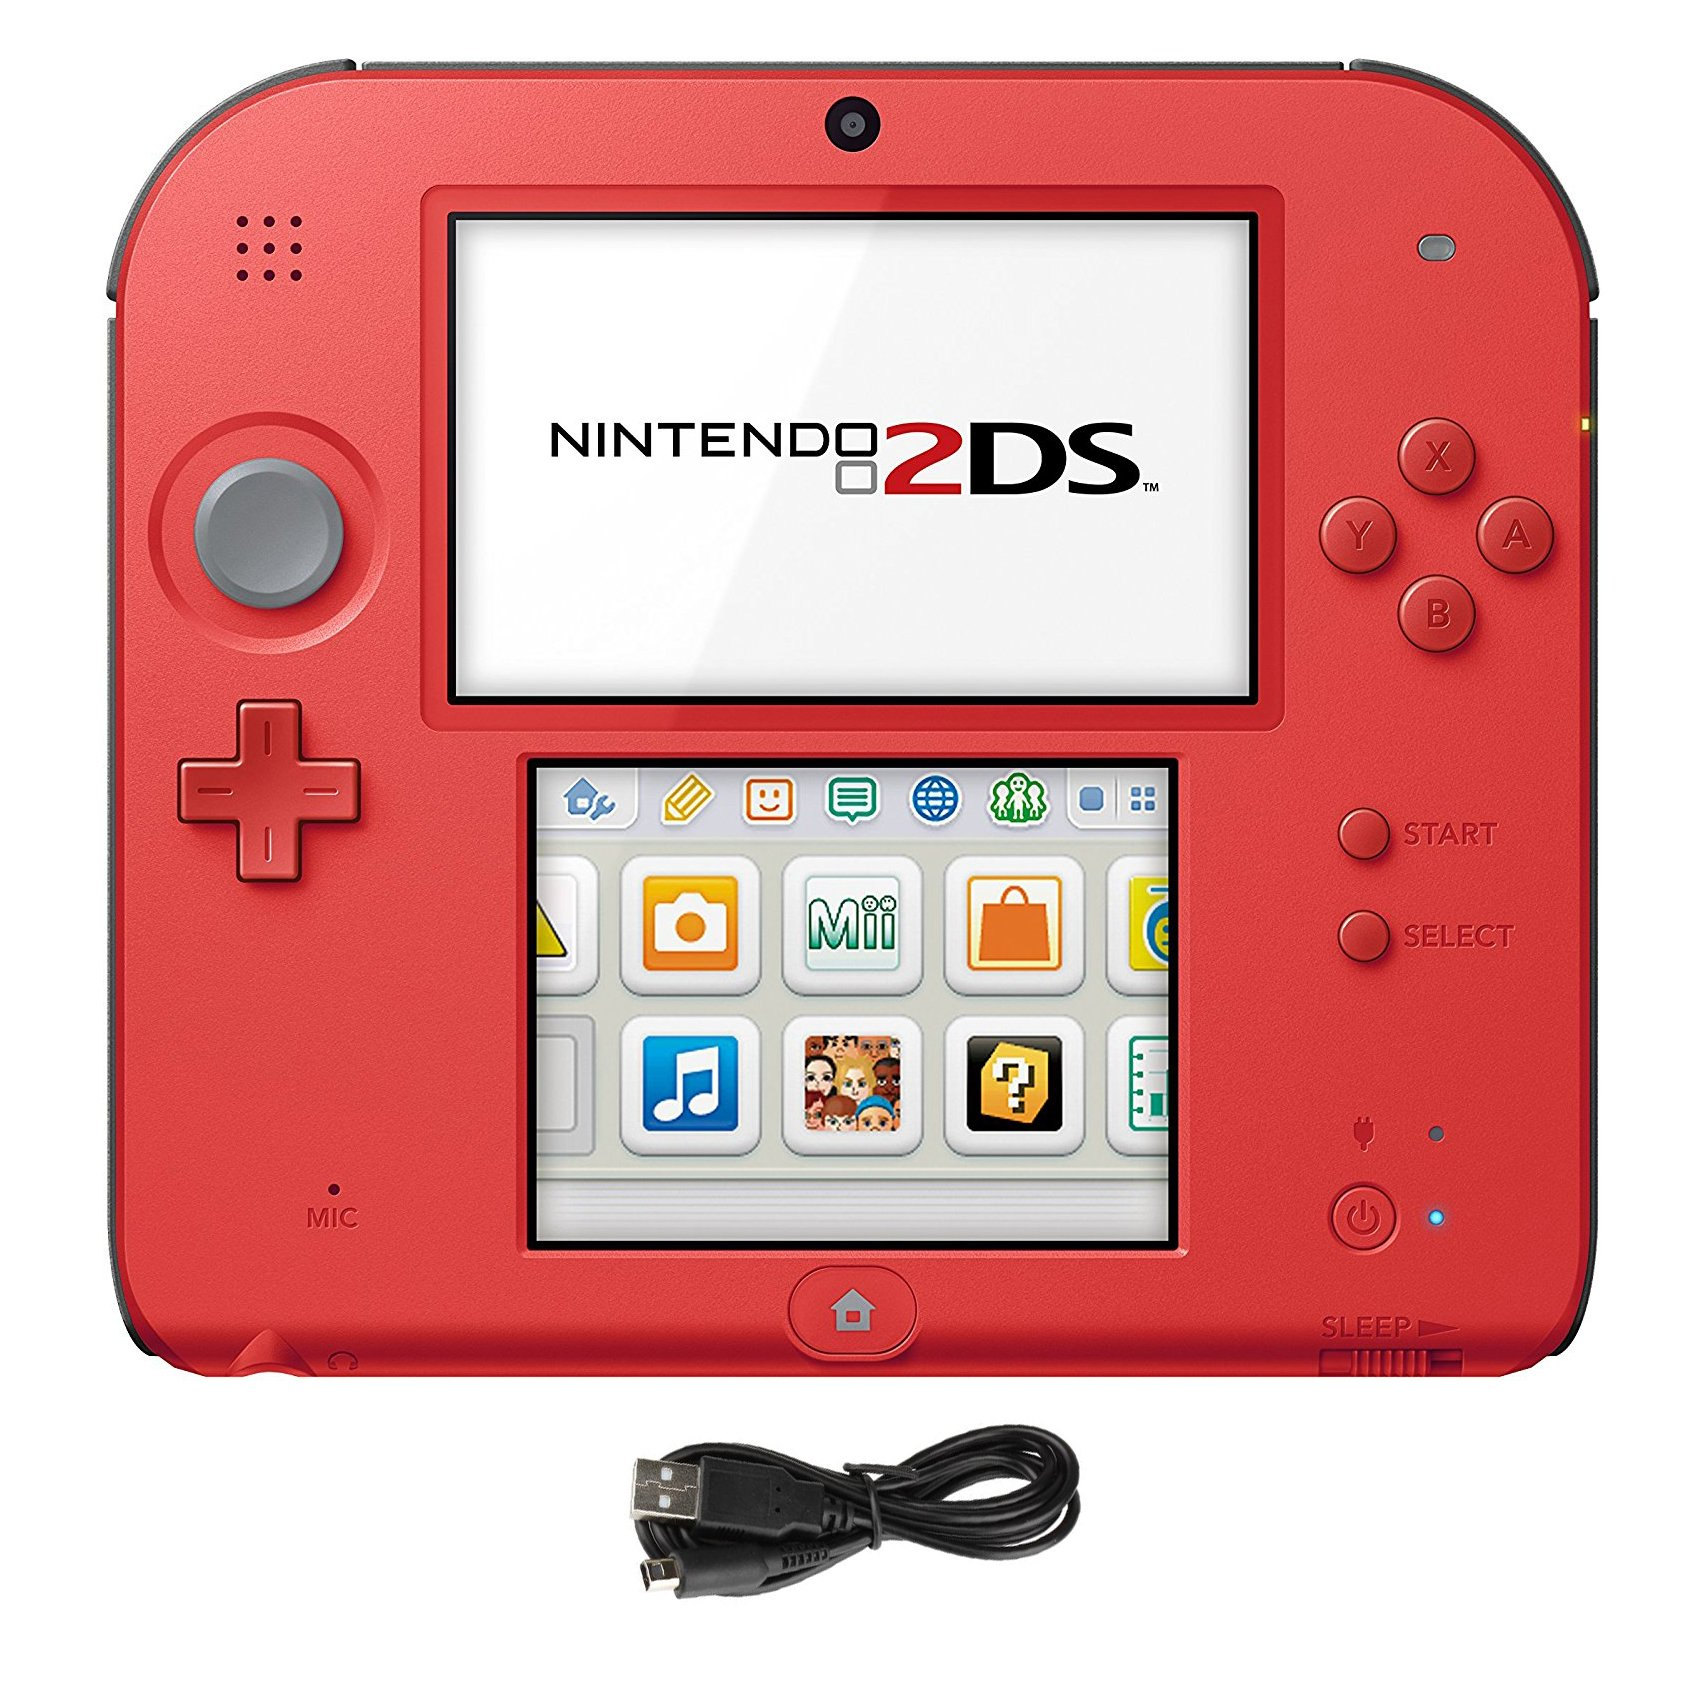 Nintendo 2DS 2 Items Bundle:Nintendo 2DS-Crimson Red 2 w/Mario Kart 7 Console and USB Sync Charge USB Cable by Nintendo2DS